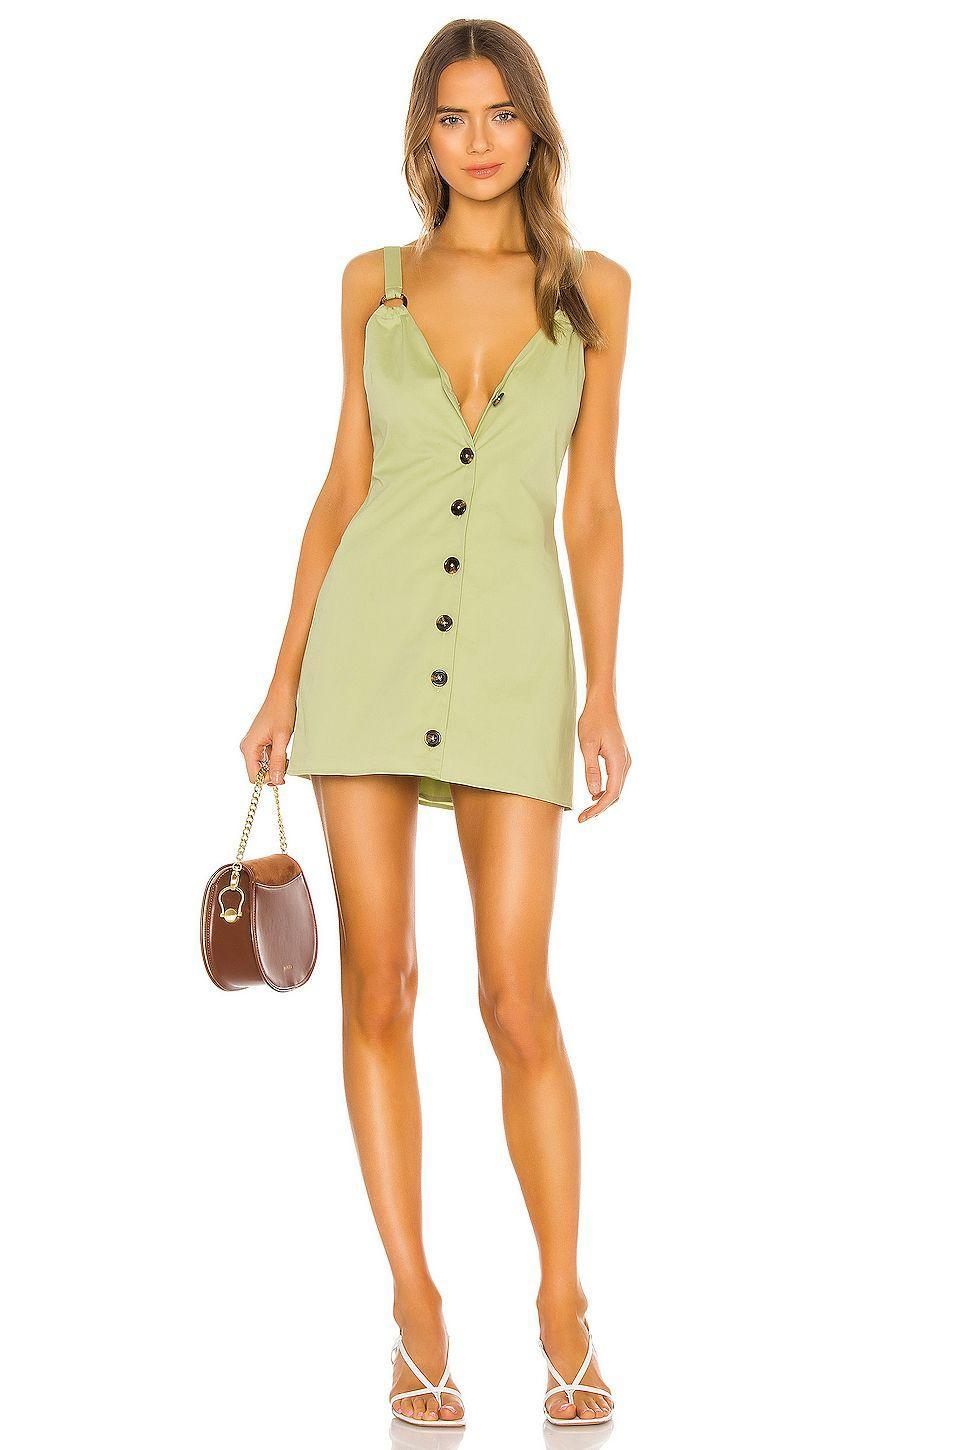 """<p><strong>House of Harlow 1960 x REVOLVE</strong></p><p>revolve.com</p><p><strong>$135.00</strong></p><p><a href=""""https://go.redirectingat.com?id=74968X1596630&url=https%3A%2F%2Fwww.revolve.com%2Fdp%2FHOOF-WD647%2F&sref=https%3A%2F%2Fwww.cosmopolitan.com%2Fstyle-beauty%2Ffashion%2Fg13602855%2Fbest-gift-ideas-for-women%2F"""" rel=""""nofollow noopener"""" target=""""_blank"""" data-ylk=""""slk:Shop Now"""" class=""""link rapid-noclick-resp"""">Shop Now</a></p><p>More dresses should be made with adjustable straps and buttons, and this is my swan song. But at least this pretty option already has 'em and is perfect for a low-key summer date night.</p>"""